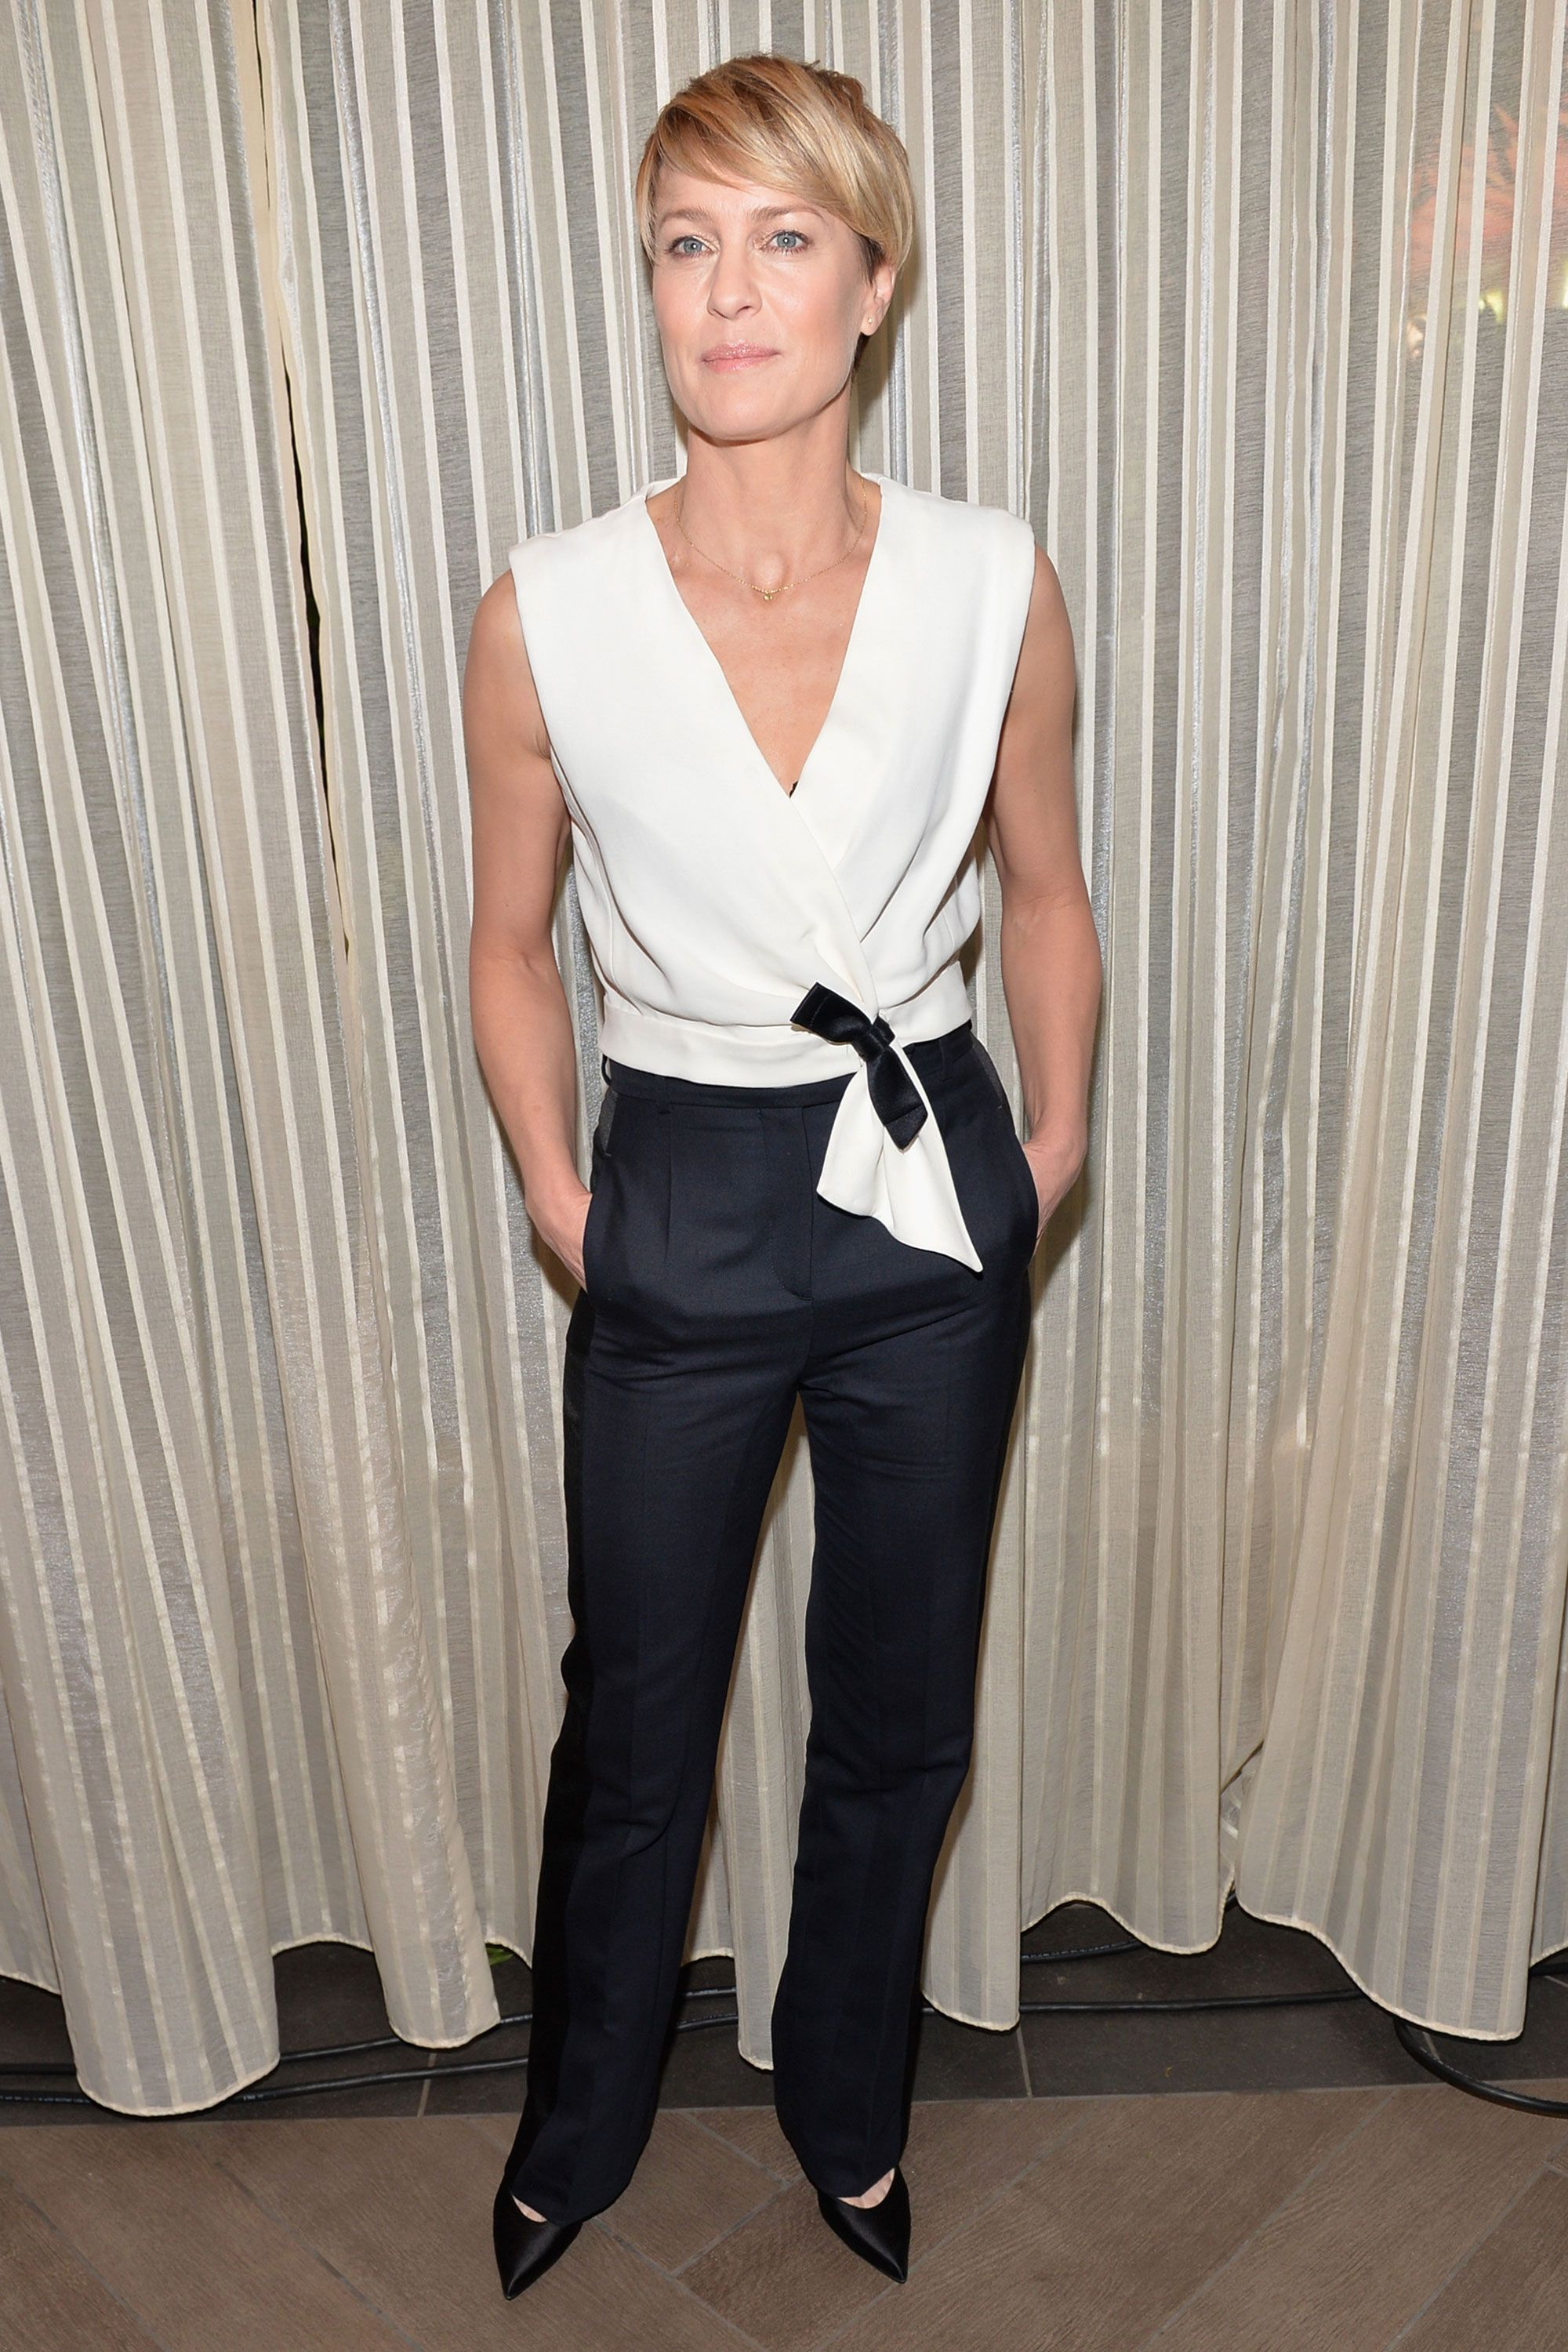 Robin wright style file robin wright robins and filing for Wright style